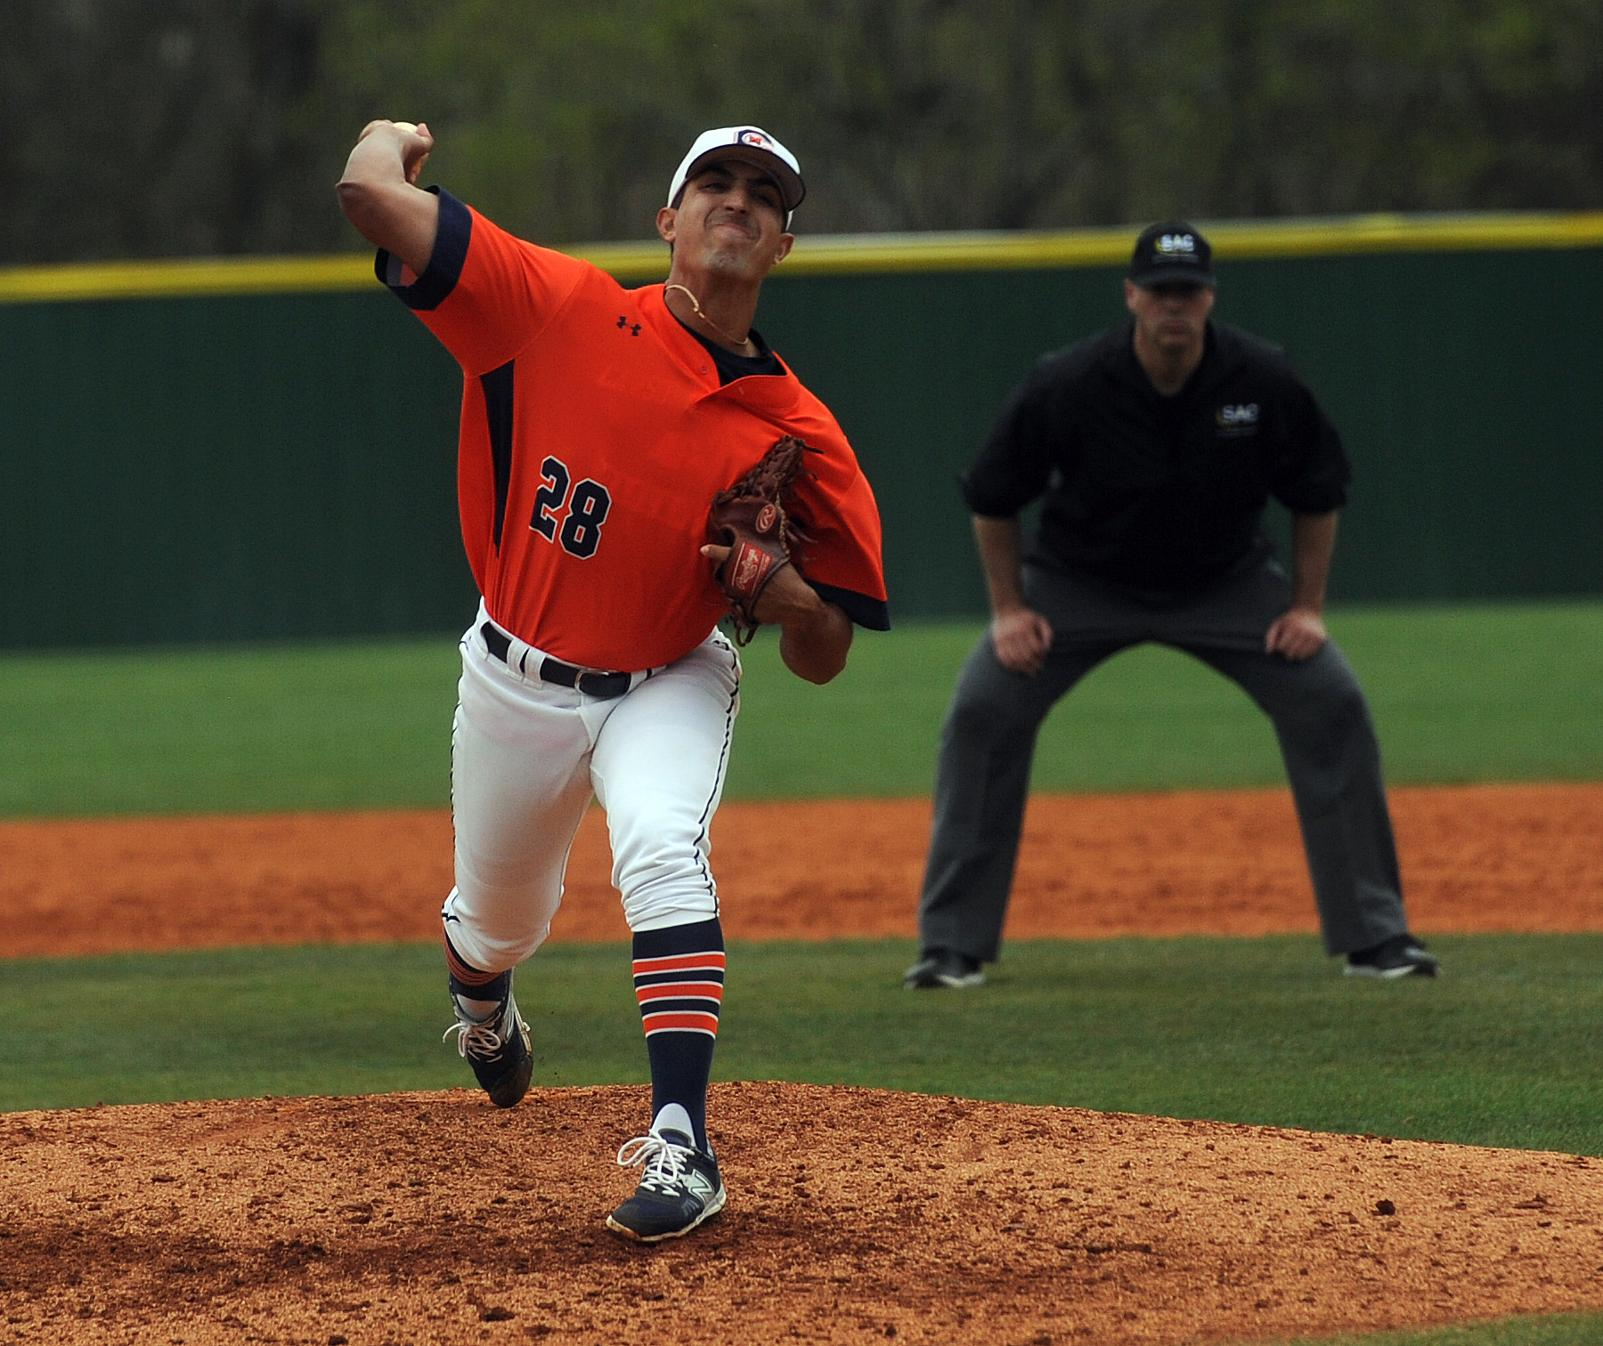 Northwood evens series as Eagles struggle with runners on